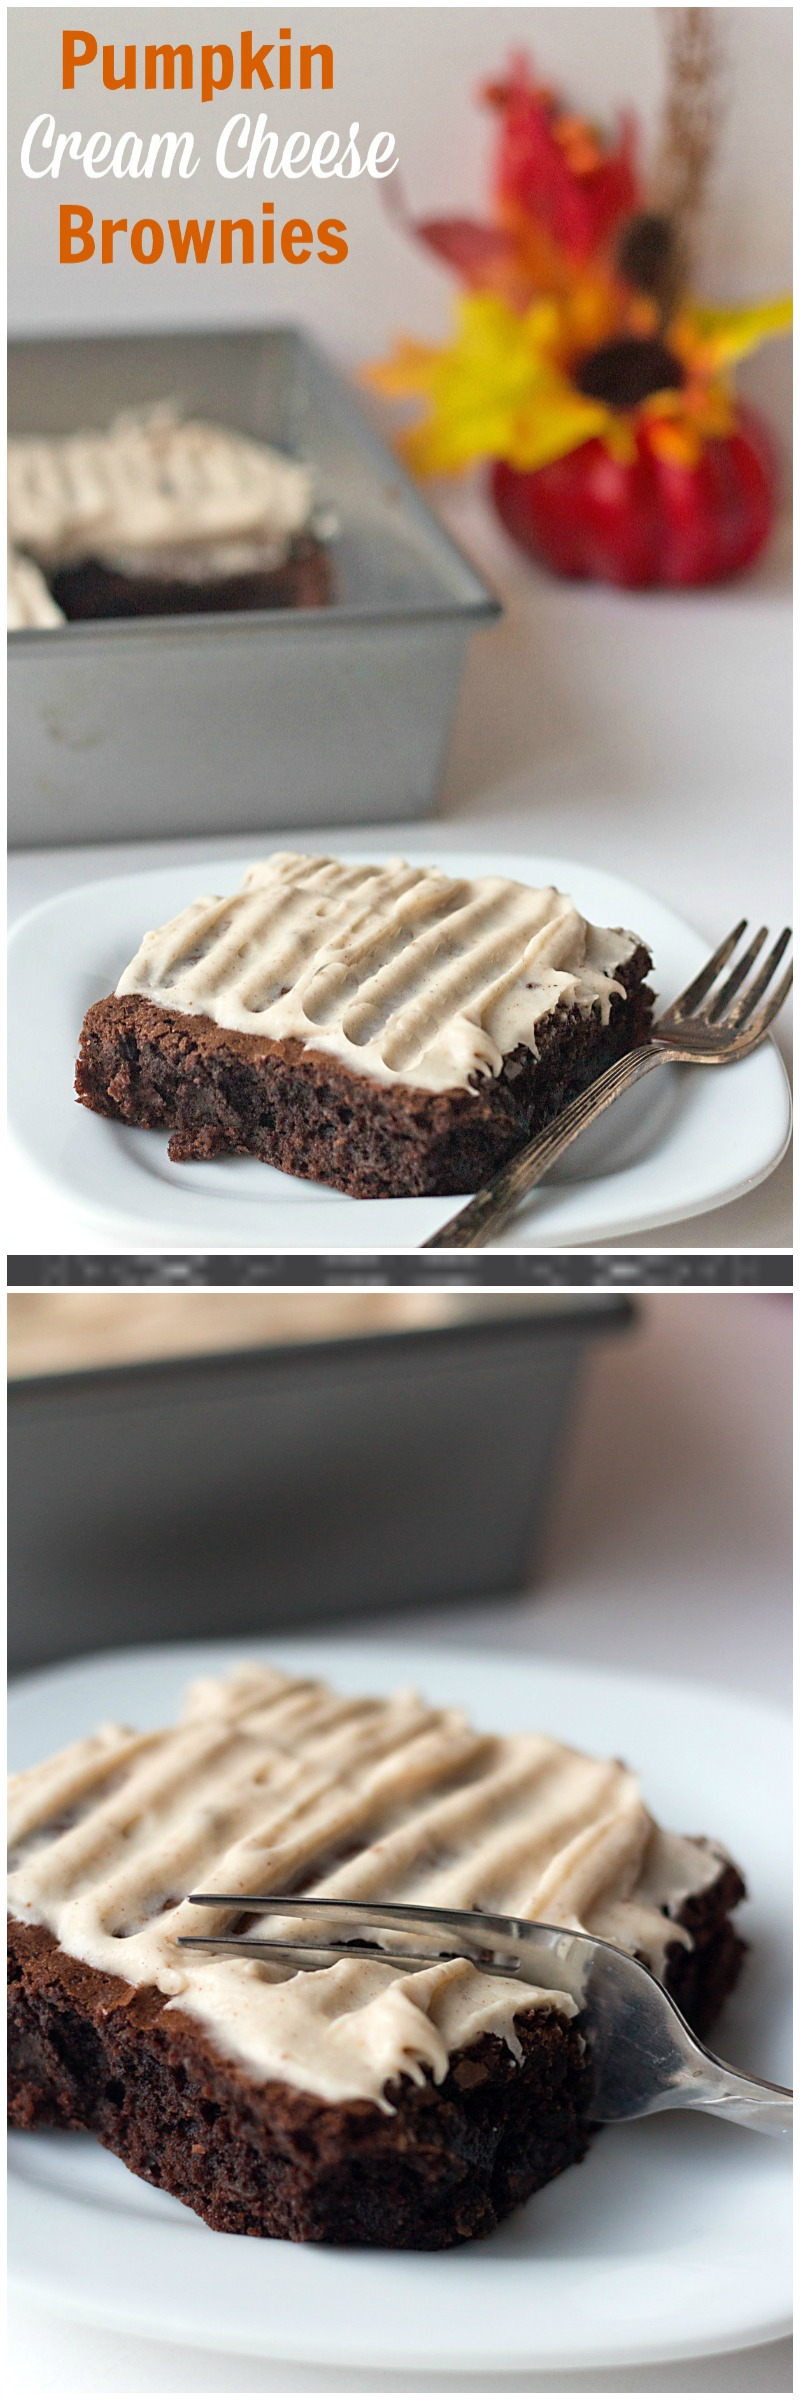 Pumpkin Cream Cheese Brownies - a semi-homemade brownie recipe, jazzed up for Halloween with a sweet pumpkin cream cheese frosting.